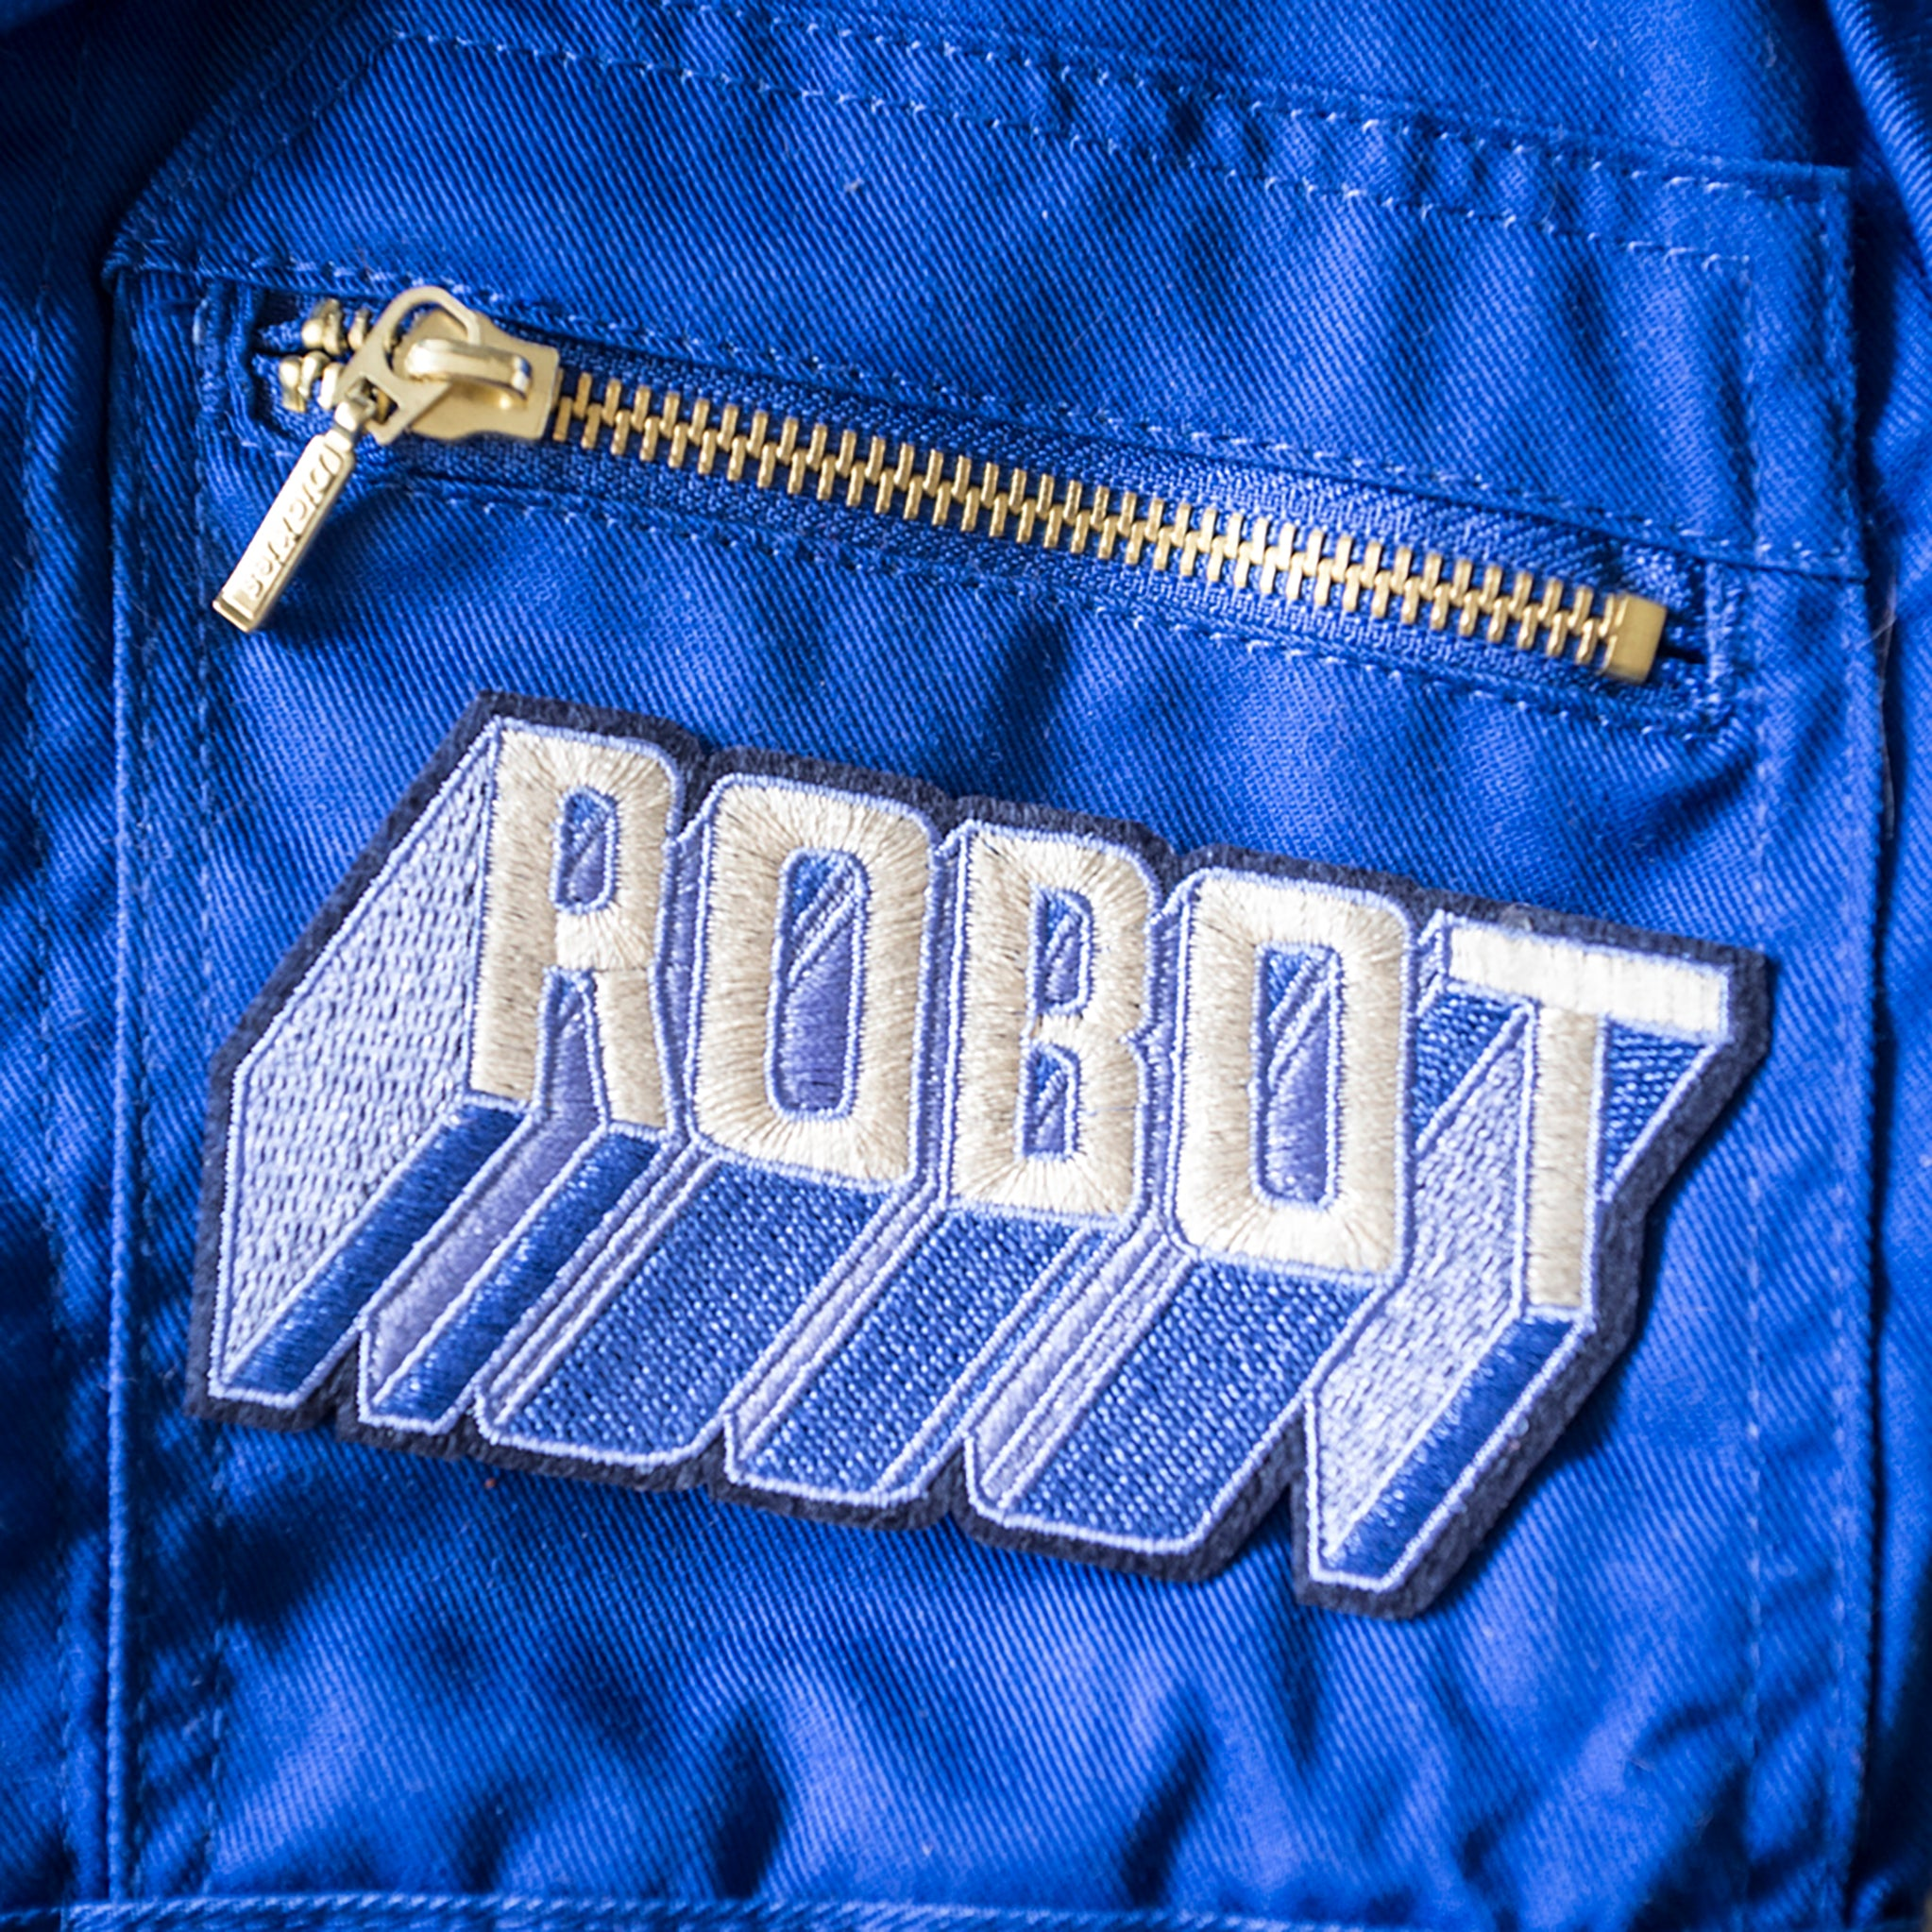 DANDY STAR ROBOT PATCH - Dandy Star